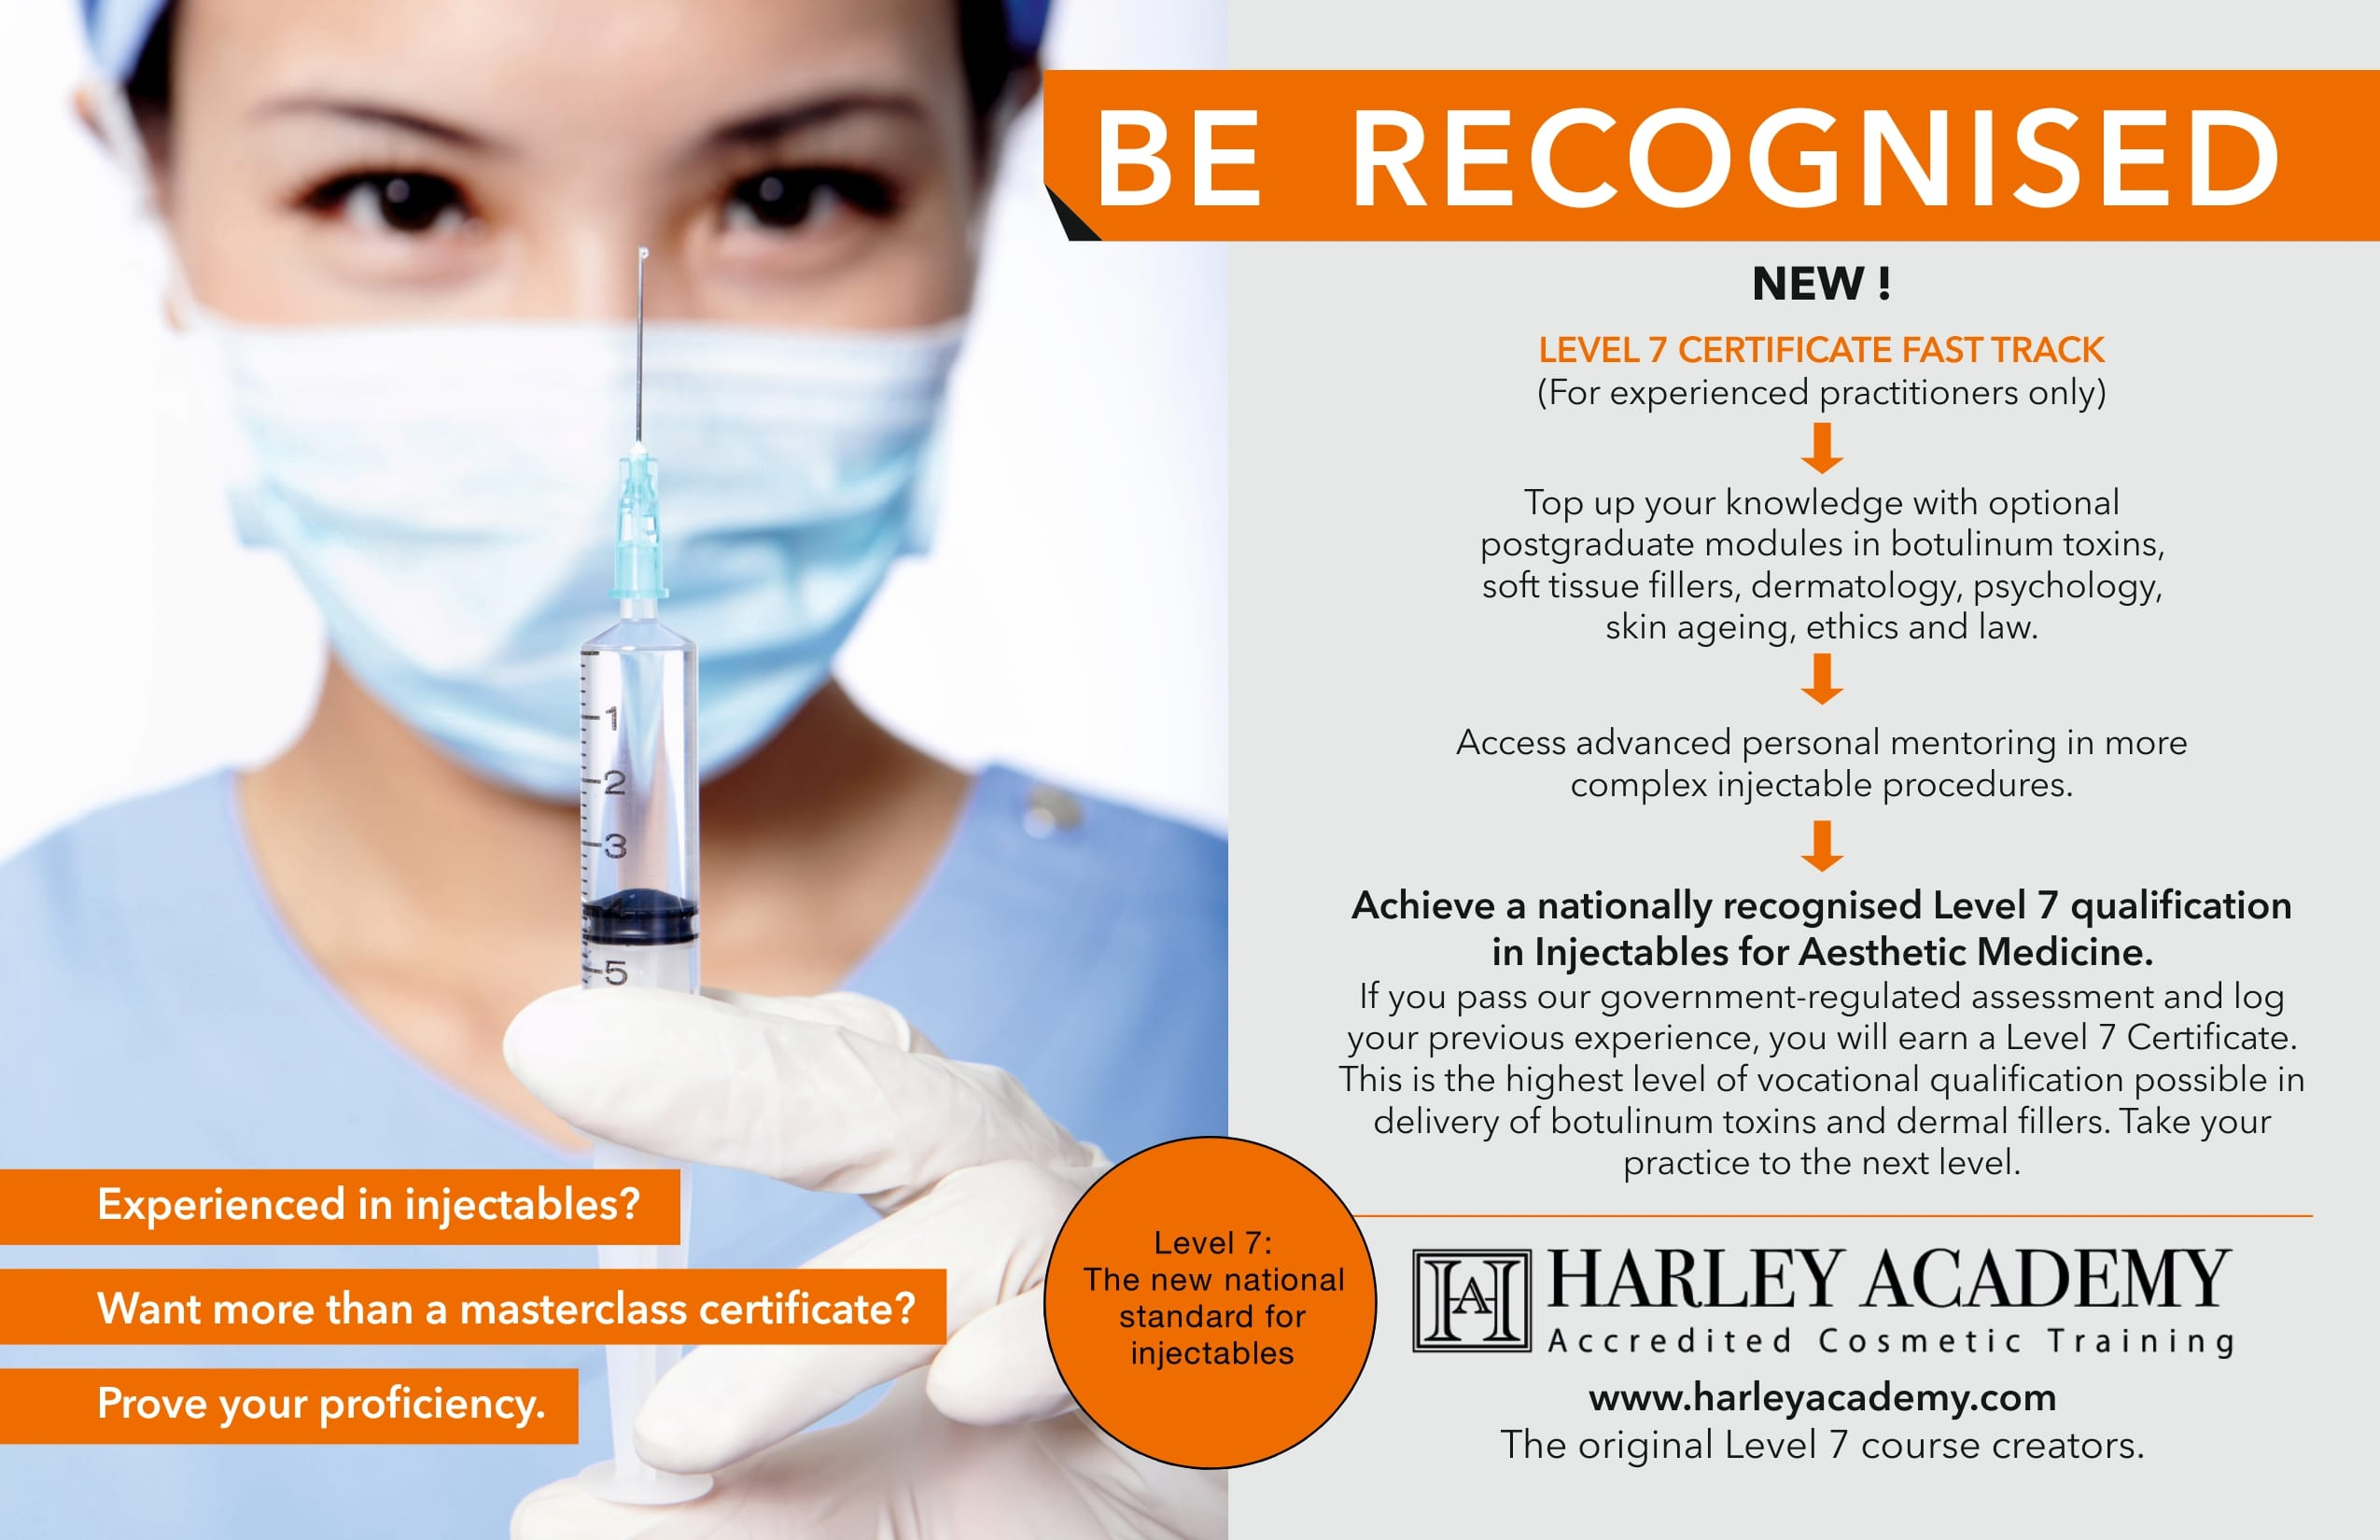 Level 7 injectables Fast Track Banner - L7 new national standard Harley Academy aesthetic medicine